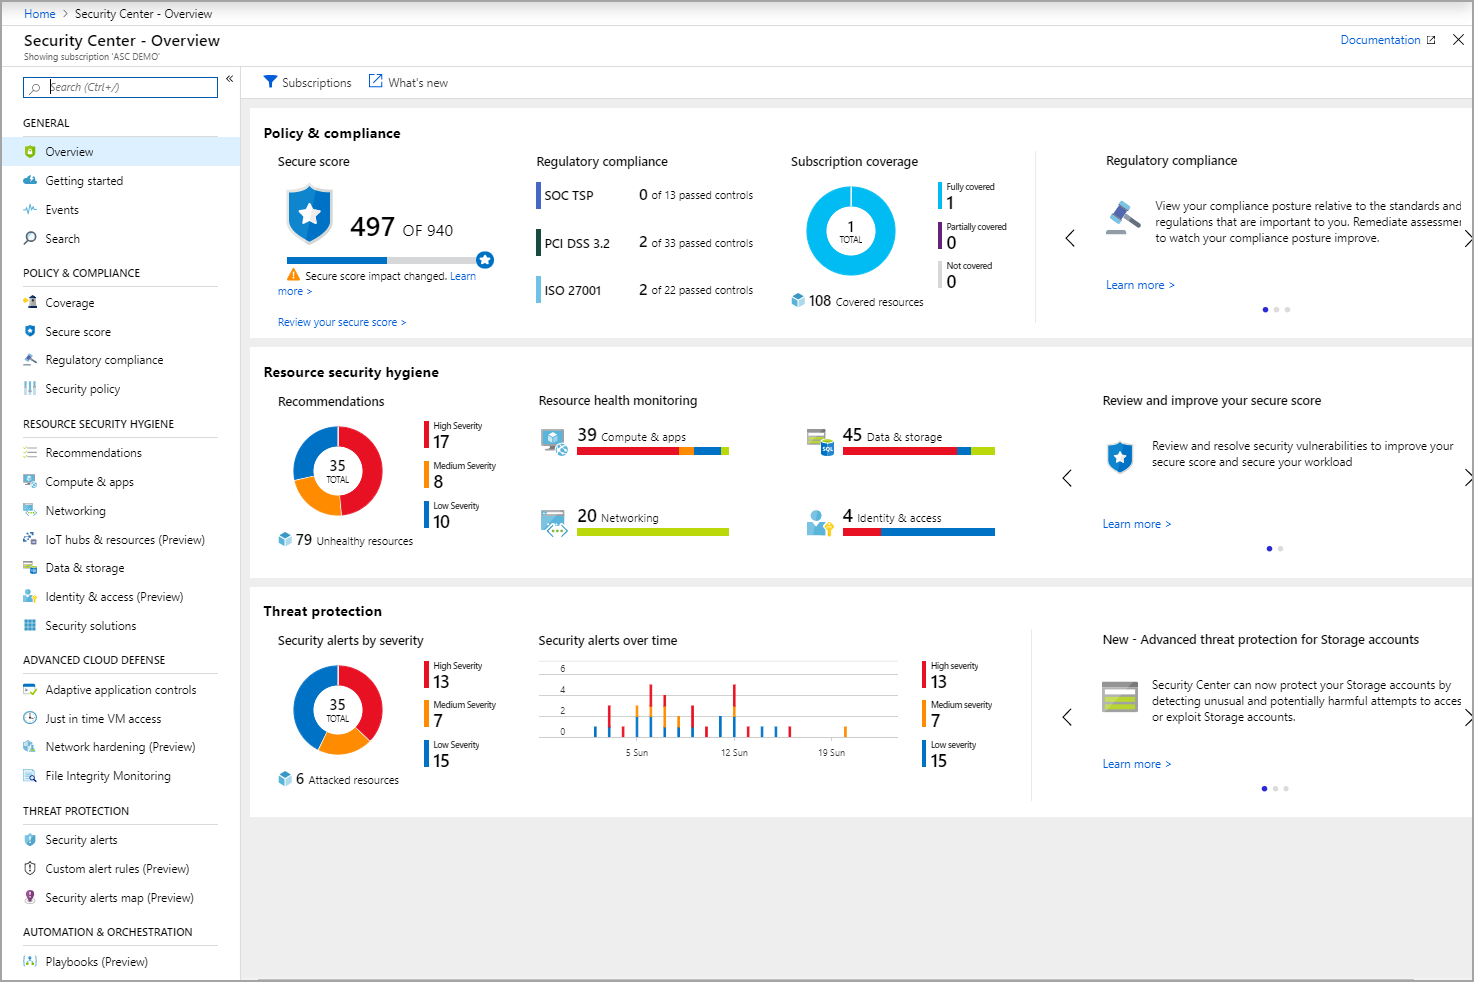 Screenshot of the Overview in the Azure Security Center.